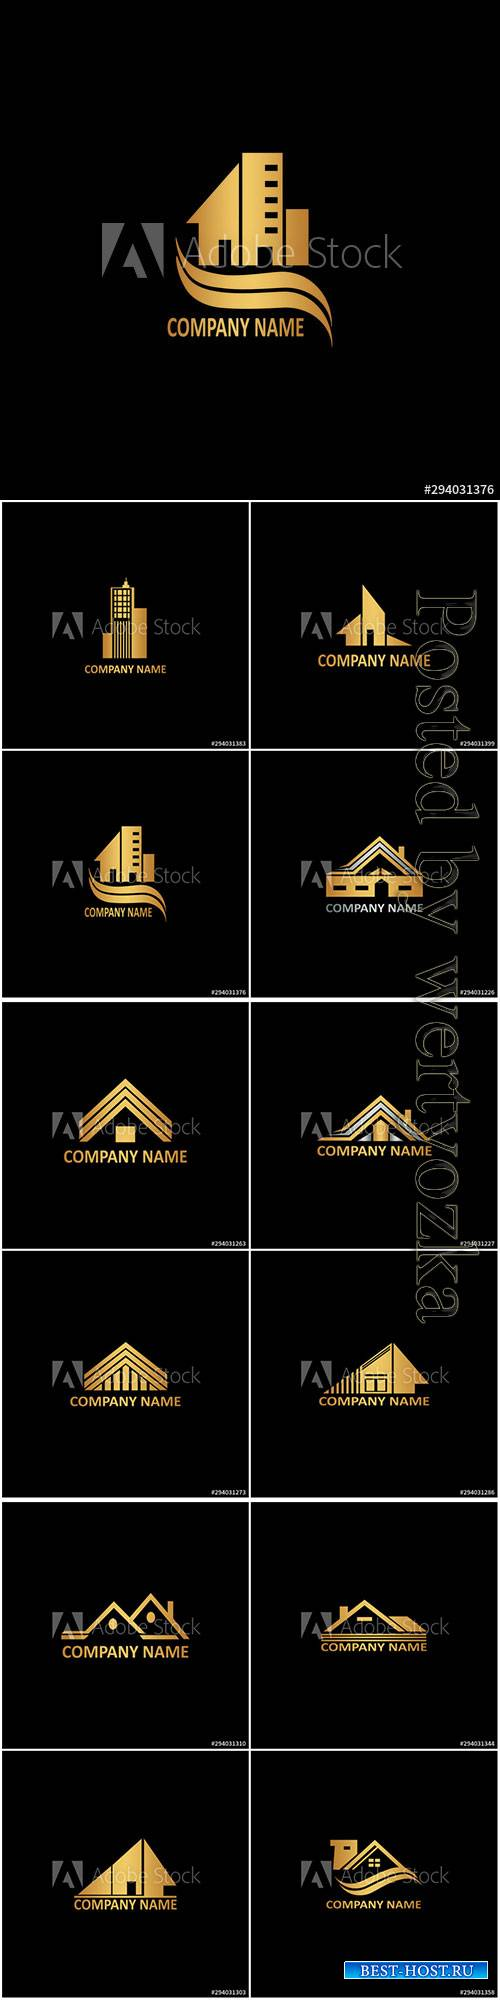 Golden abstract building logo icon vector design concept